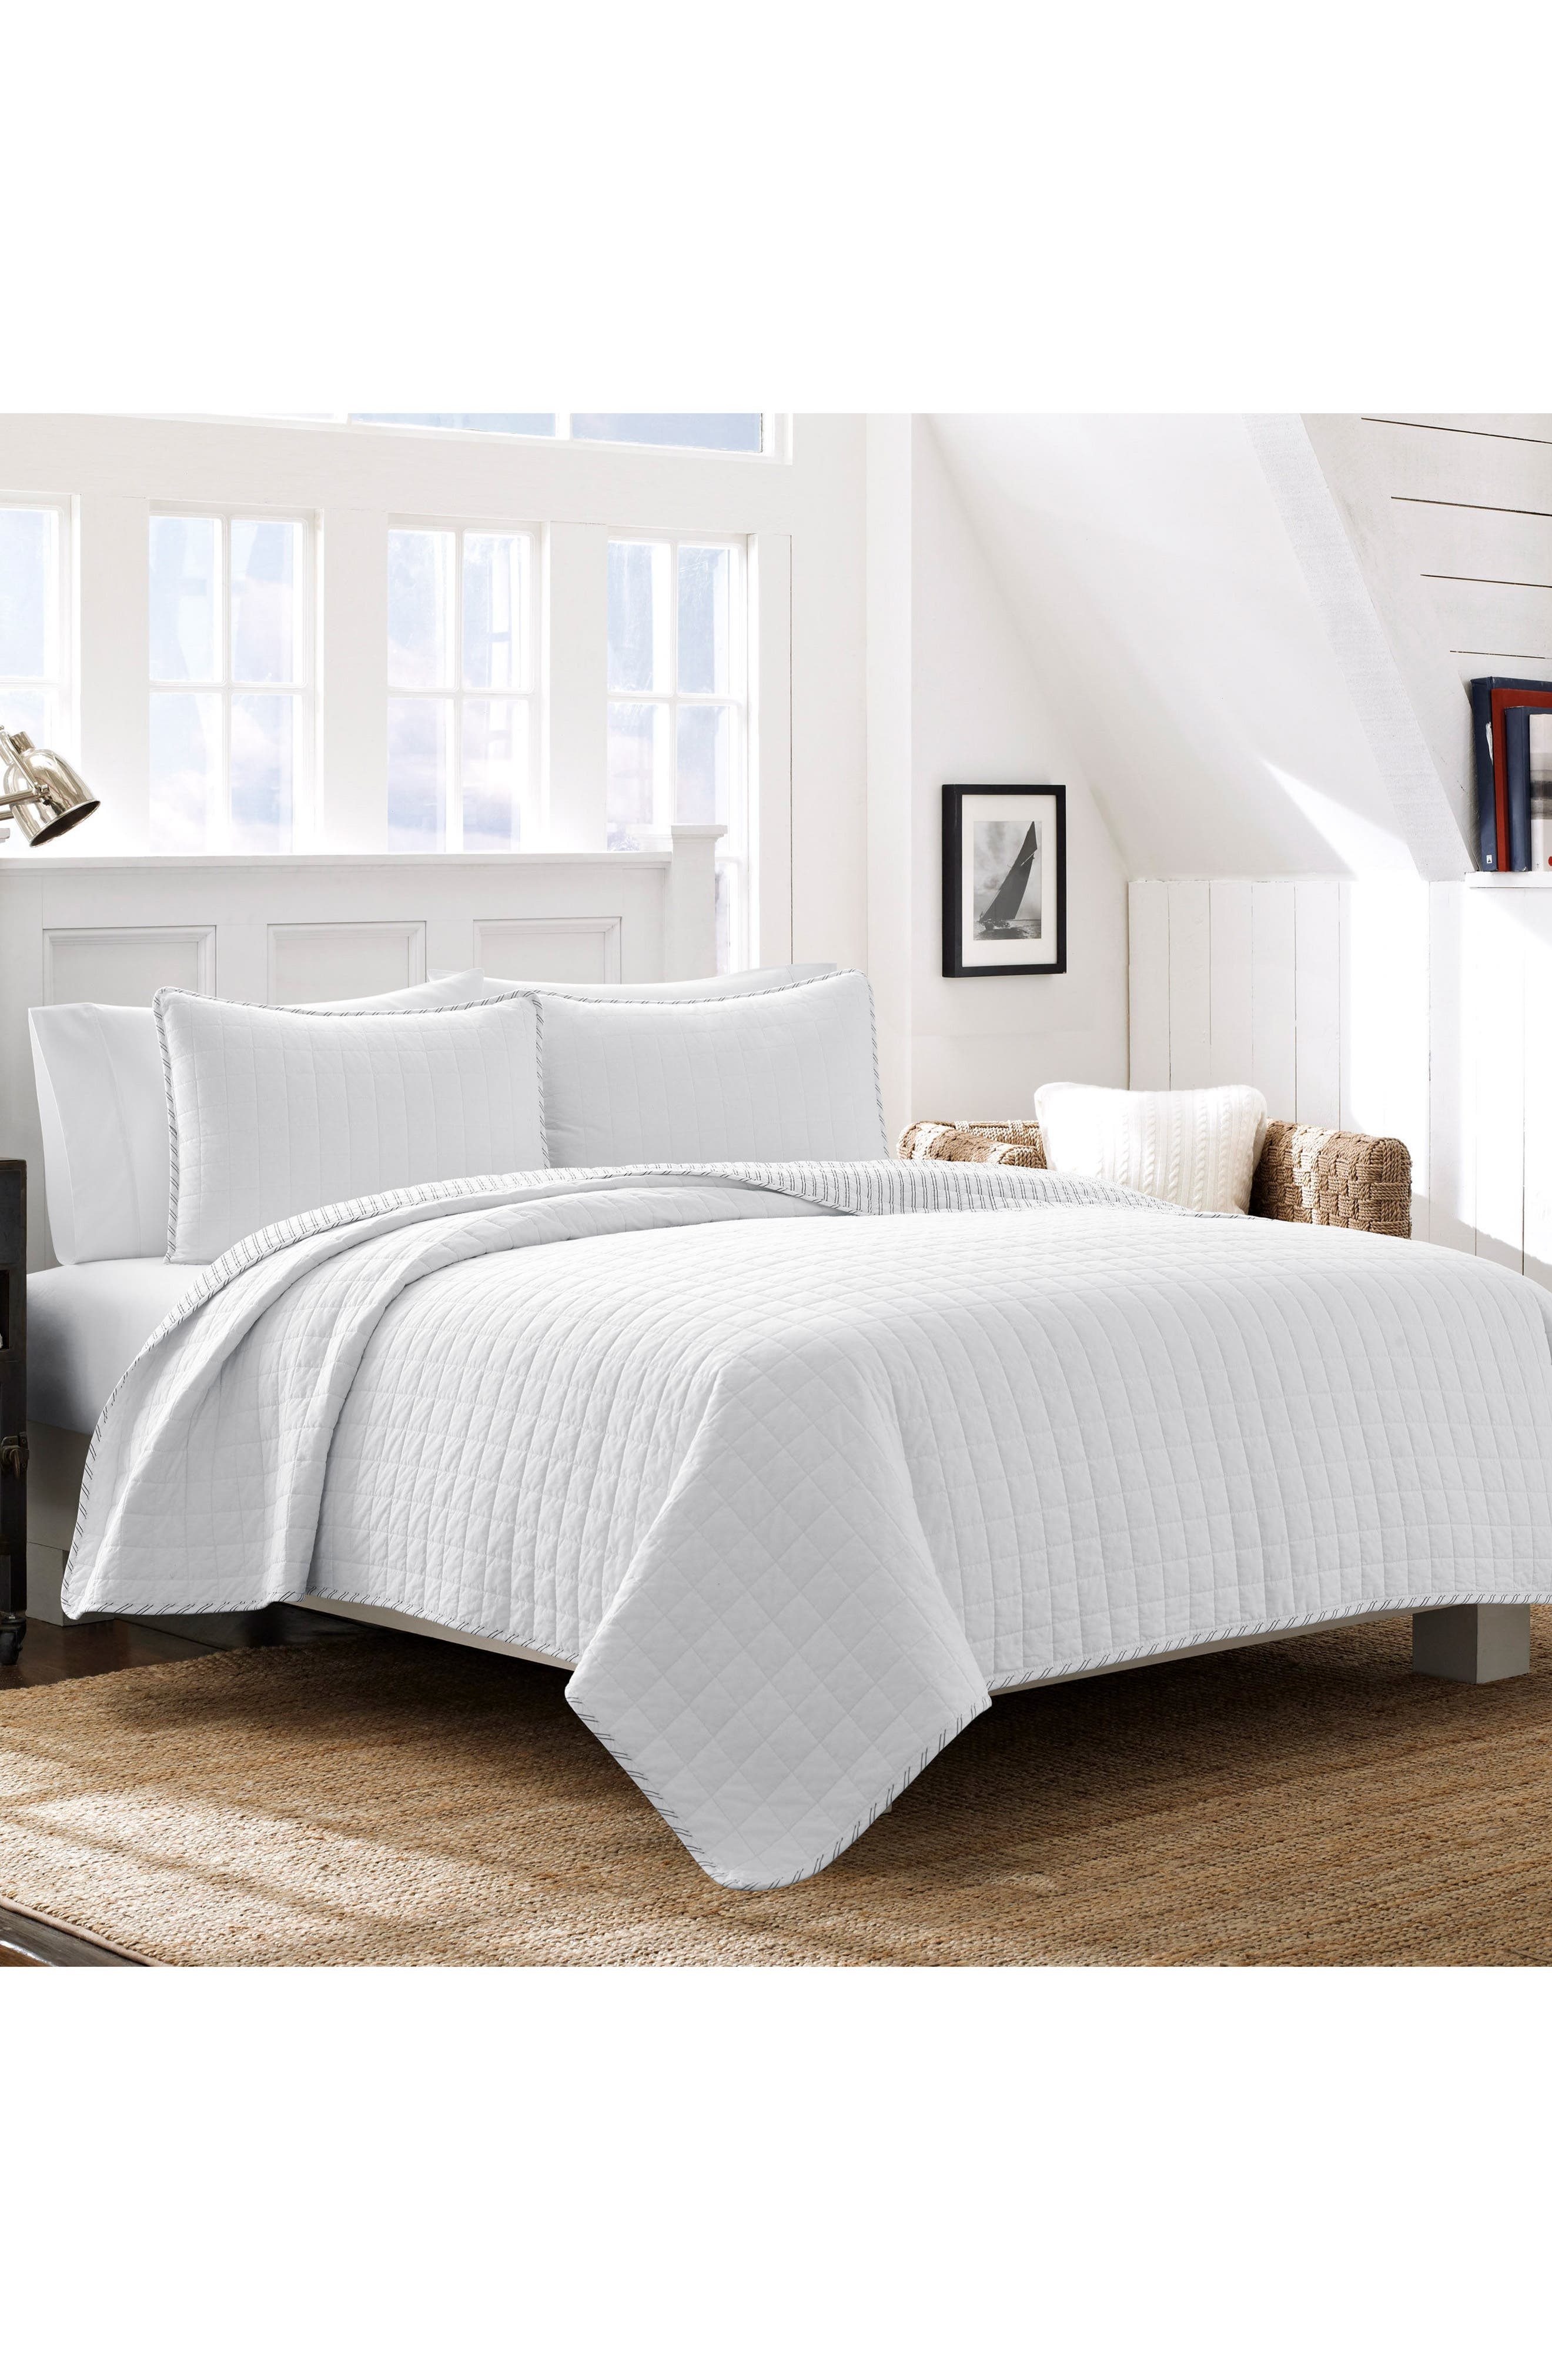 NAUTICA, Maywood Quilt & Sham Set, Main thumbnail 1, color, WHITE